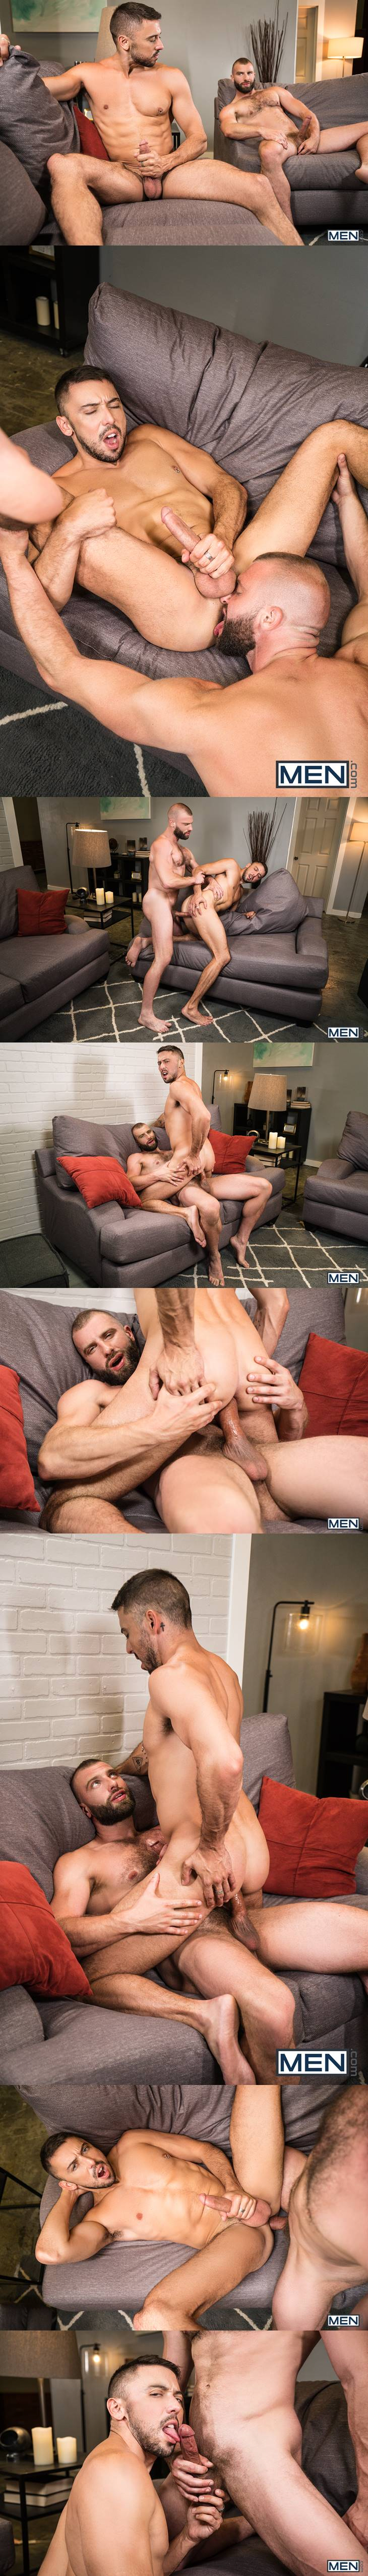 Shane Jackson Fucked By Donnie Argento